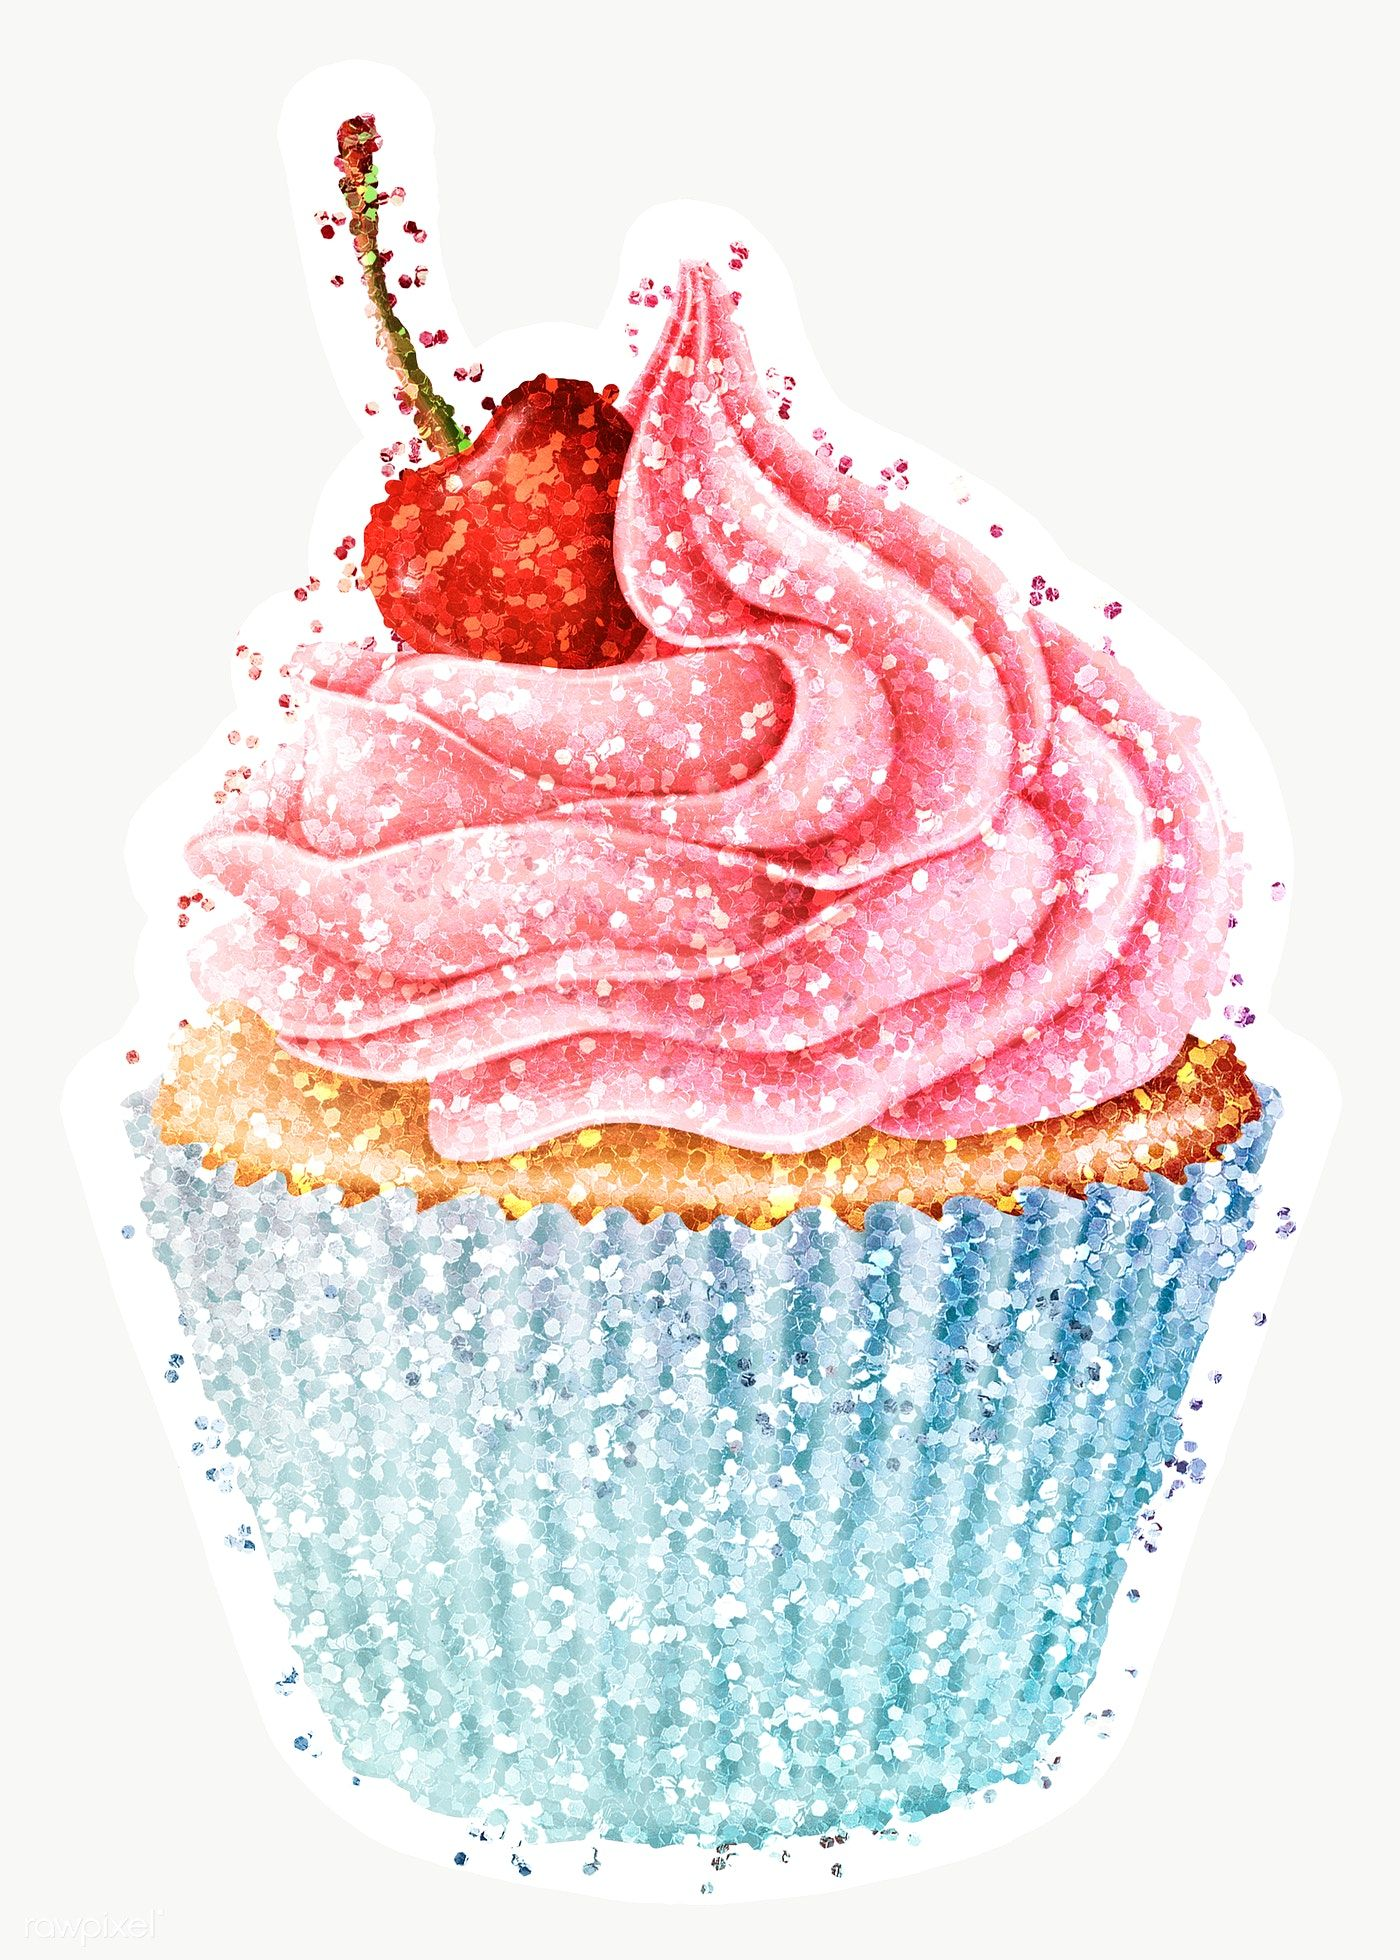 Glitter Cherry Cupcake Sticker With White Border Free Image By Rawpixel Com Ployploy Cherry Cupcakes Bling Cakes Cupcake Png